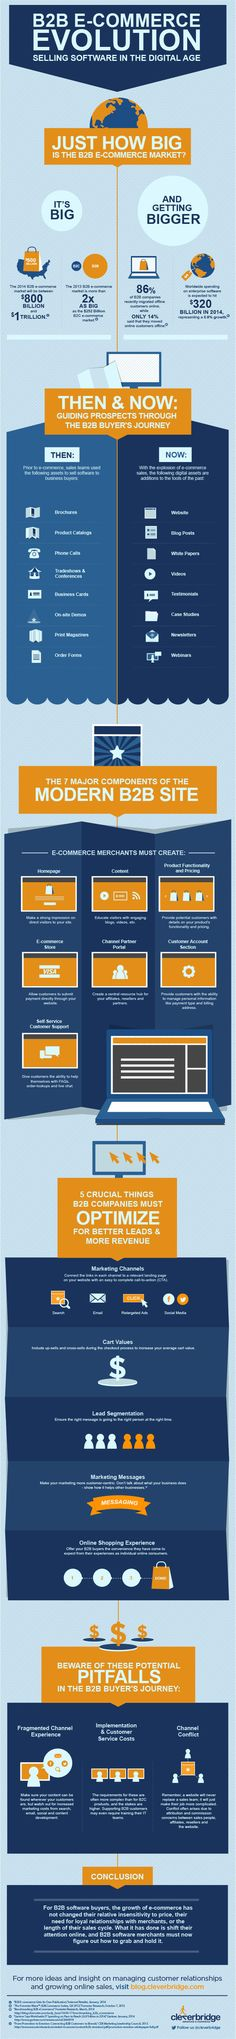 B2B ECommerce Evolution Infographic